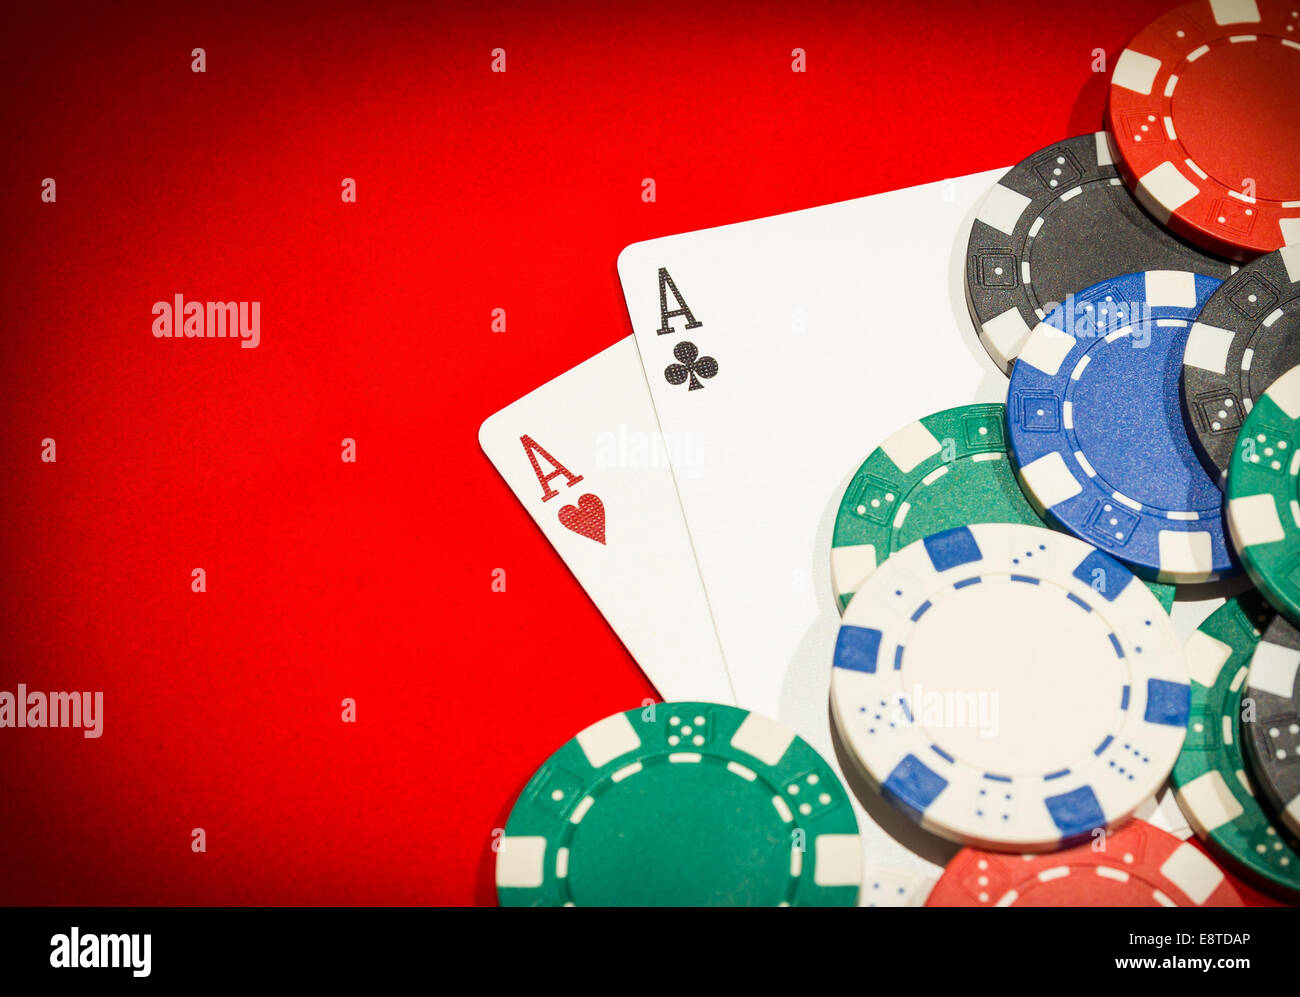 Pair of aces and chips on a red table - Stock Image